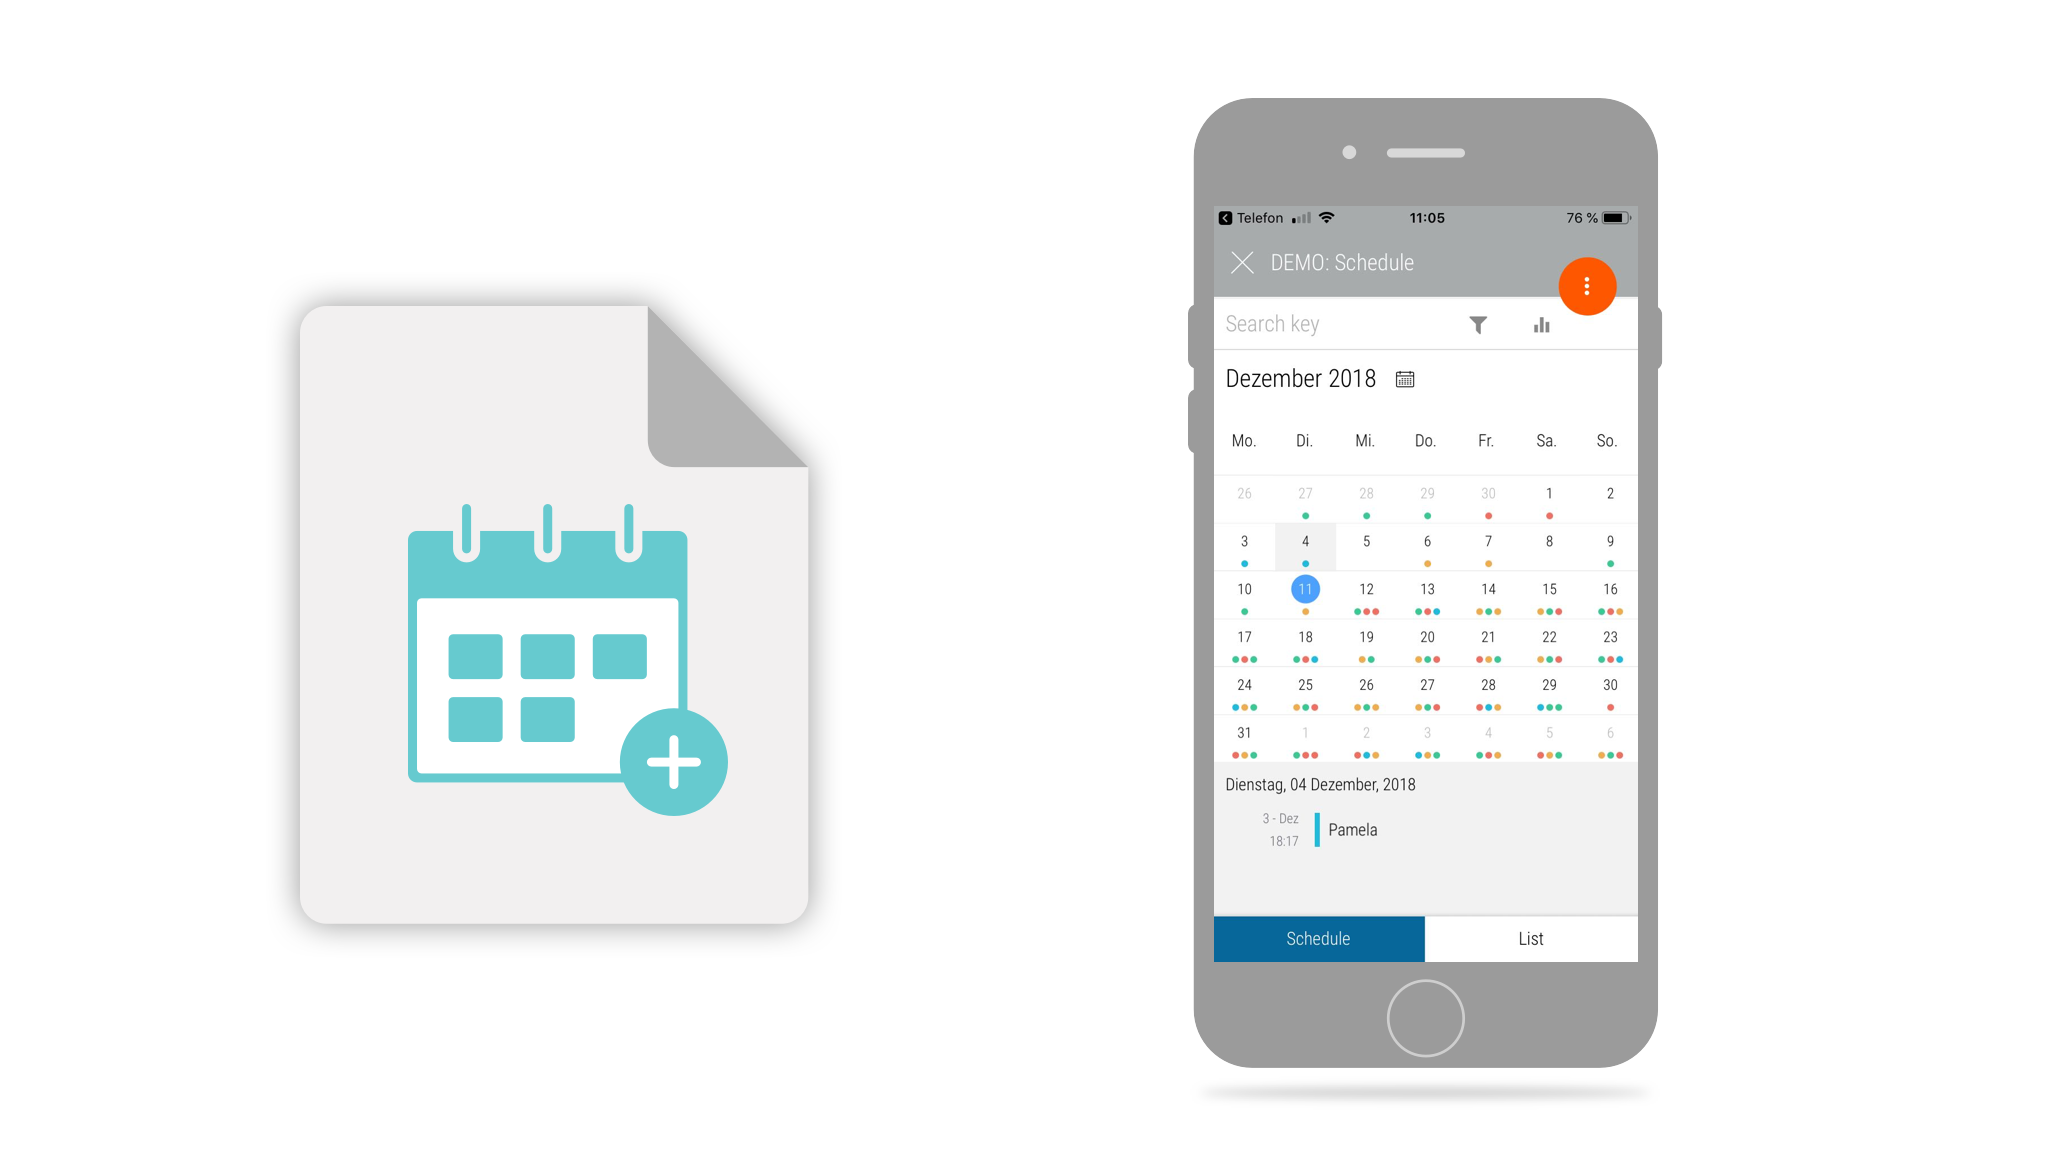 Calendar - new app type fully released